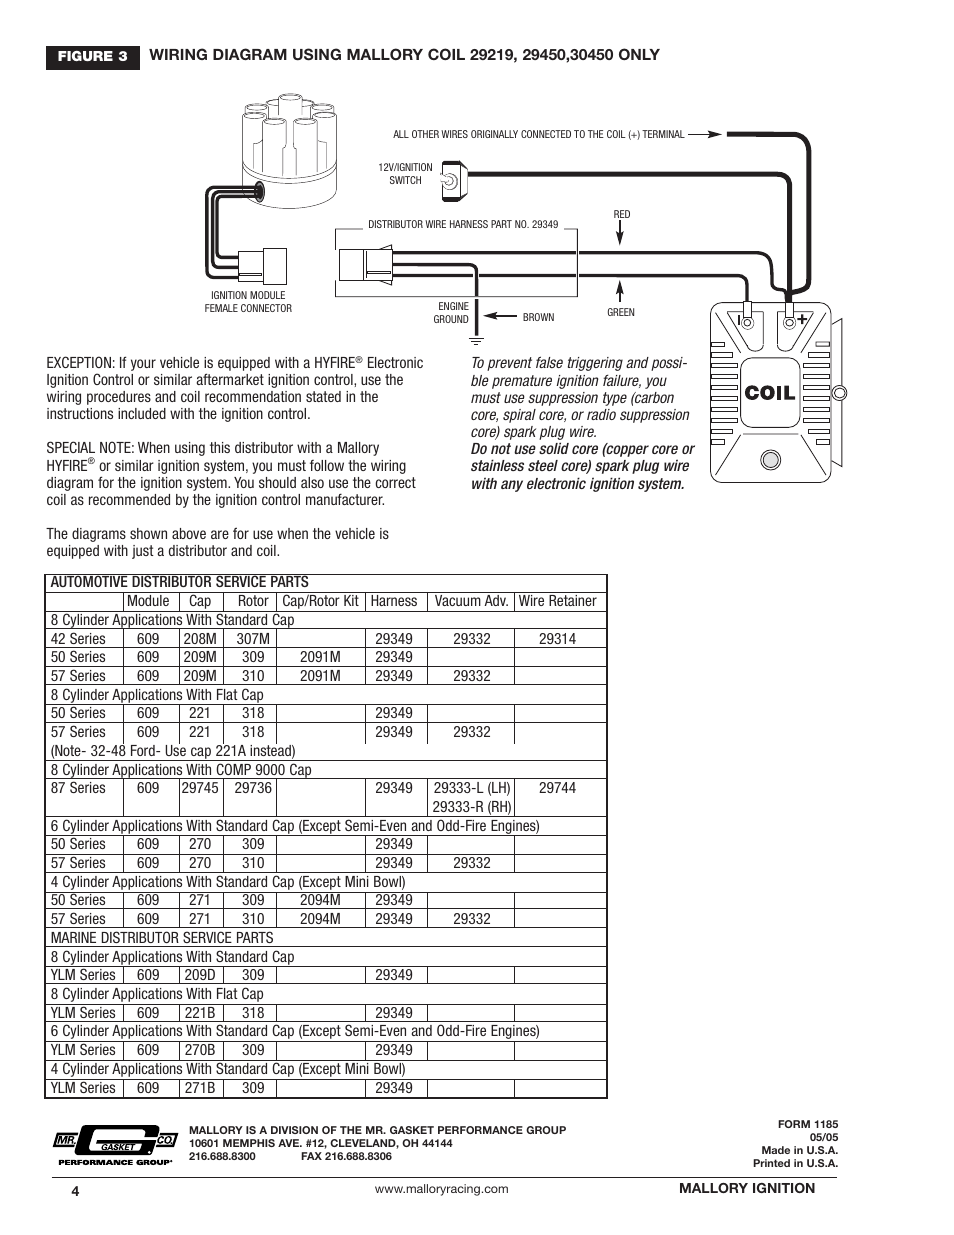 Unilite ignition wiring diagram coil and distributor free mallory ignition wiring diagram 75 free download wiring diagrams furthermore ignition coil ballast resistor wiring diagram along with astonishing mallory pooptronica Gallery